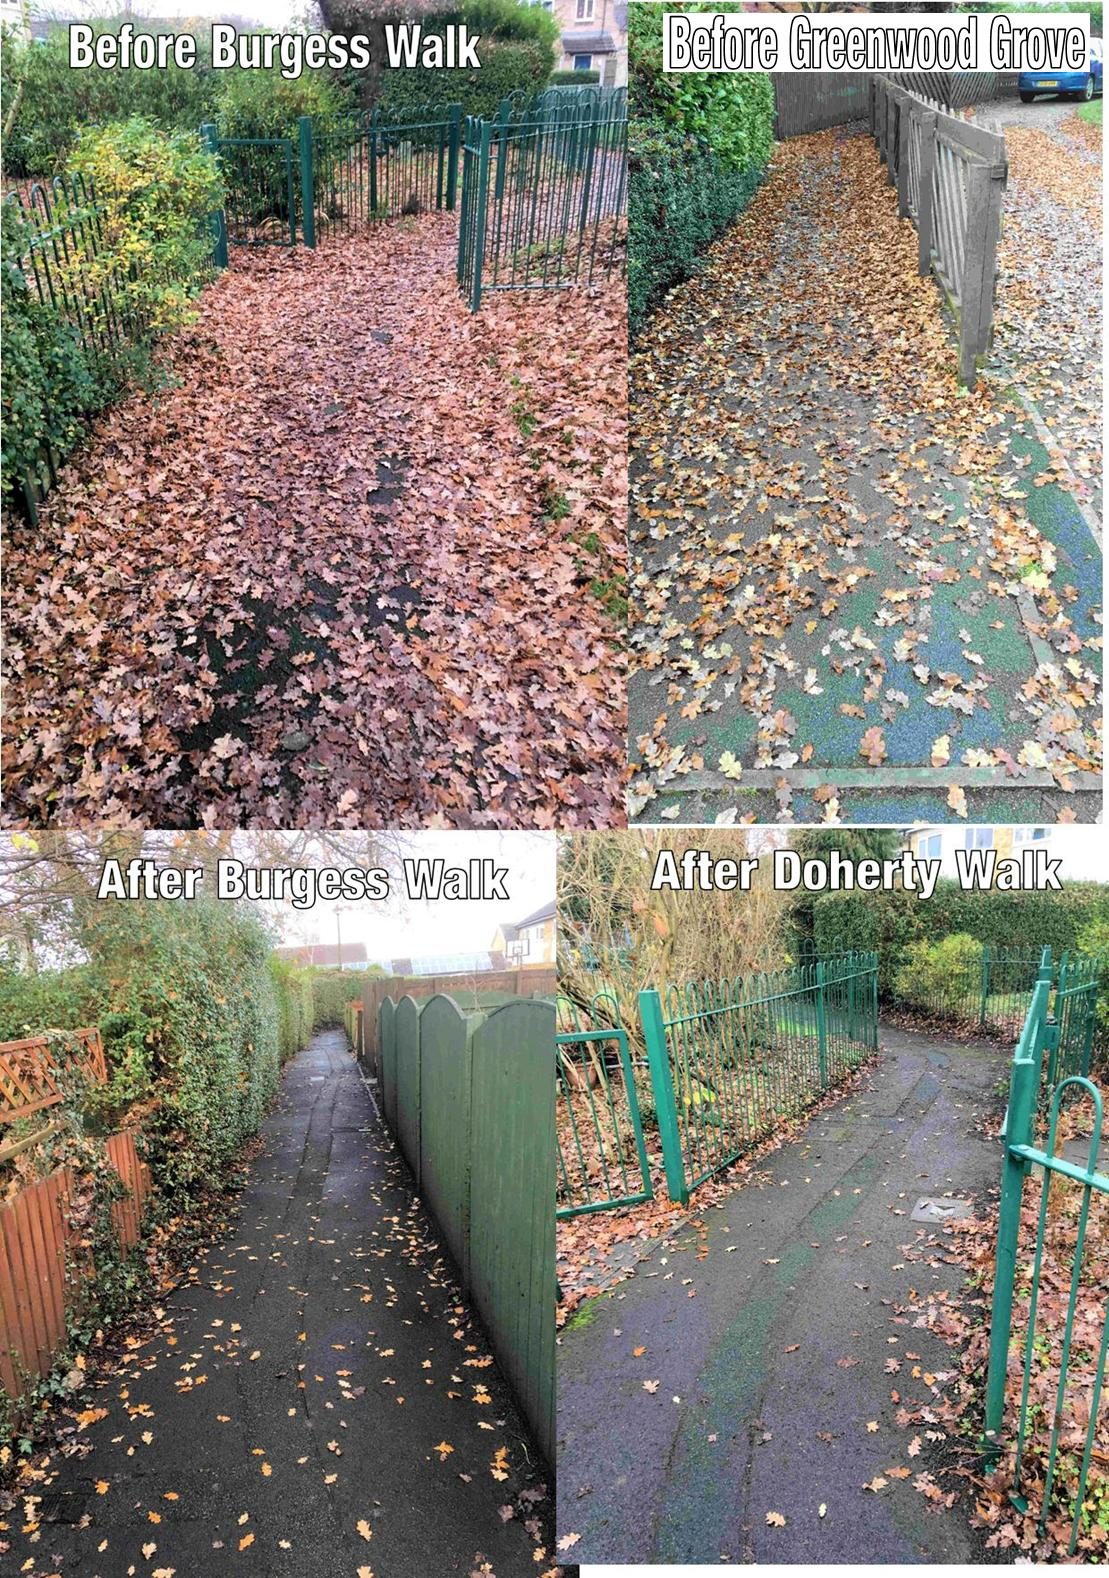 Good work by the Council in clearing leaves fin the Burgess walk and Doherty Walk areas. Still waiting for action in Greenwood Grove